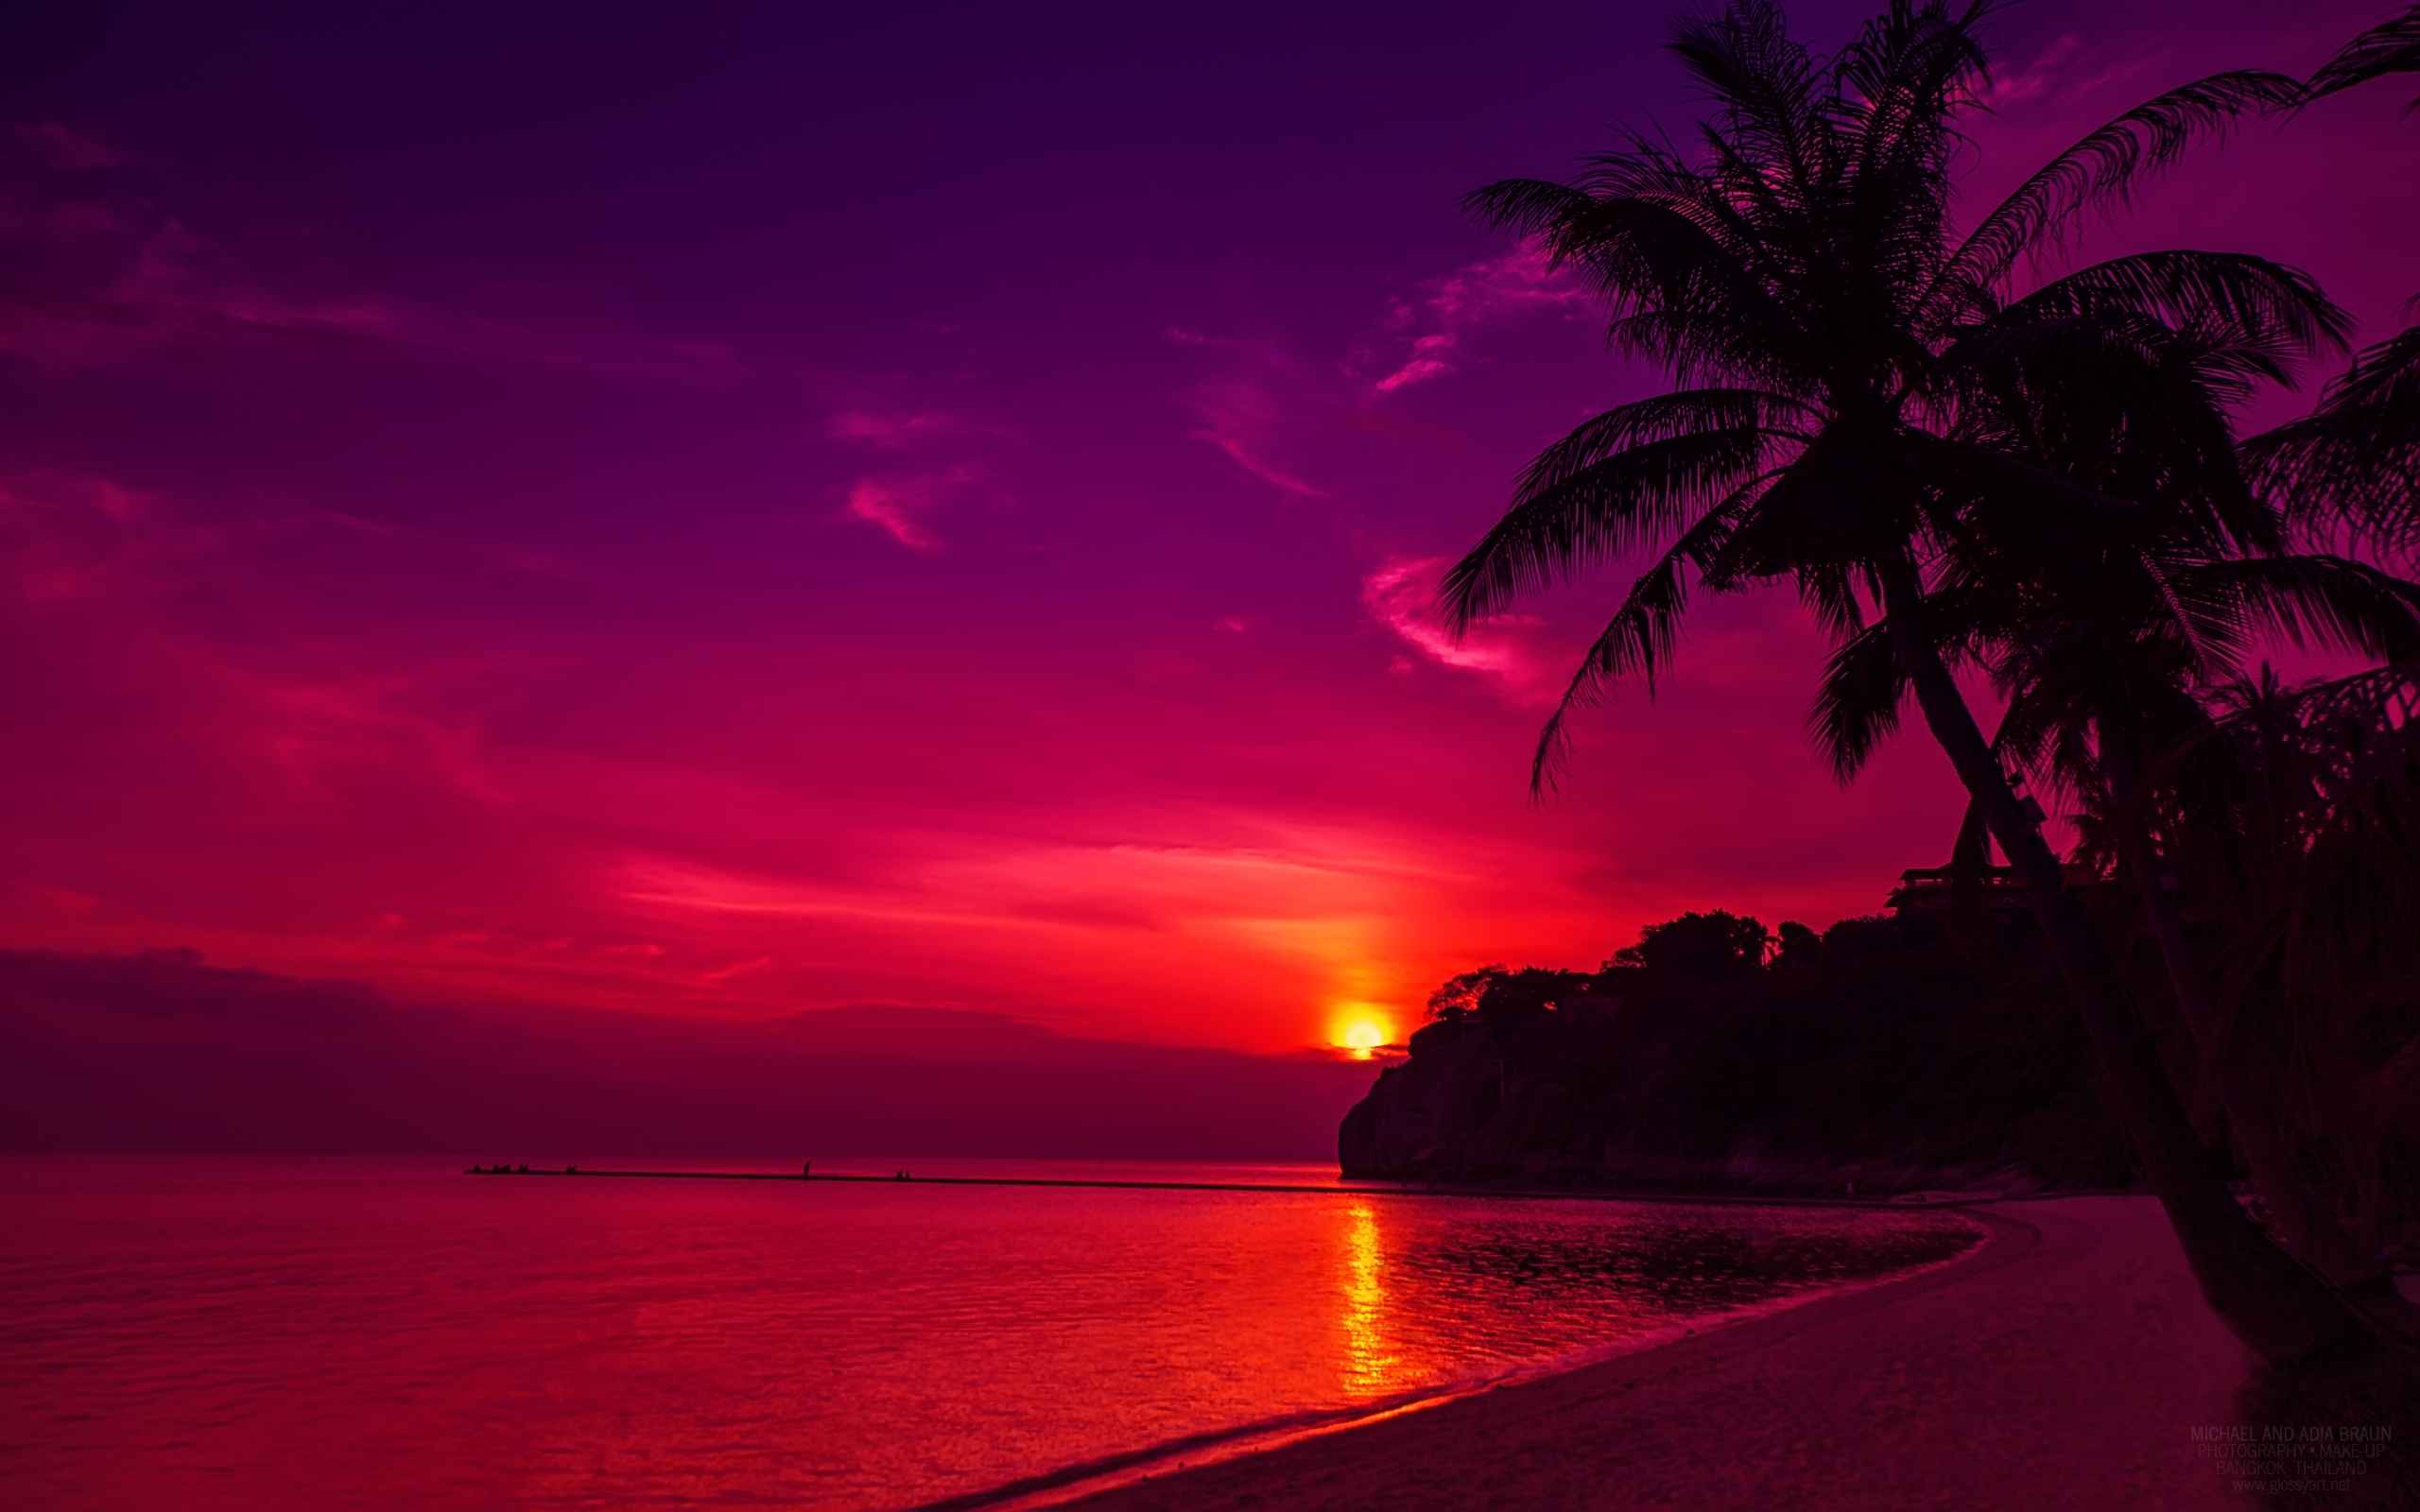 Thailand Beach Sunset Wallpapers | HD Wallpapers